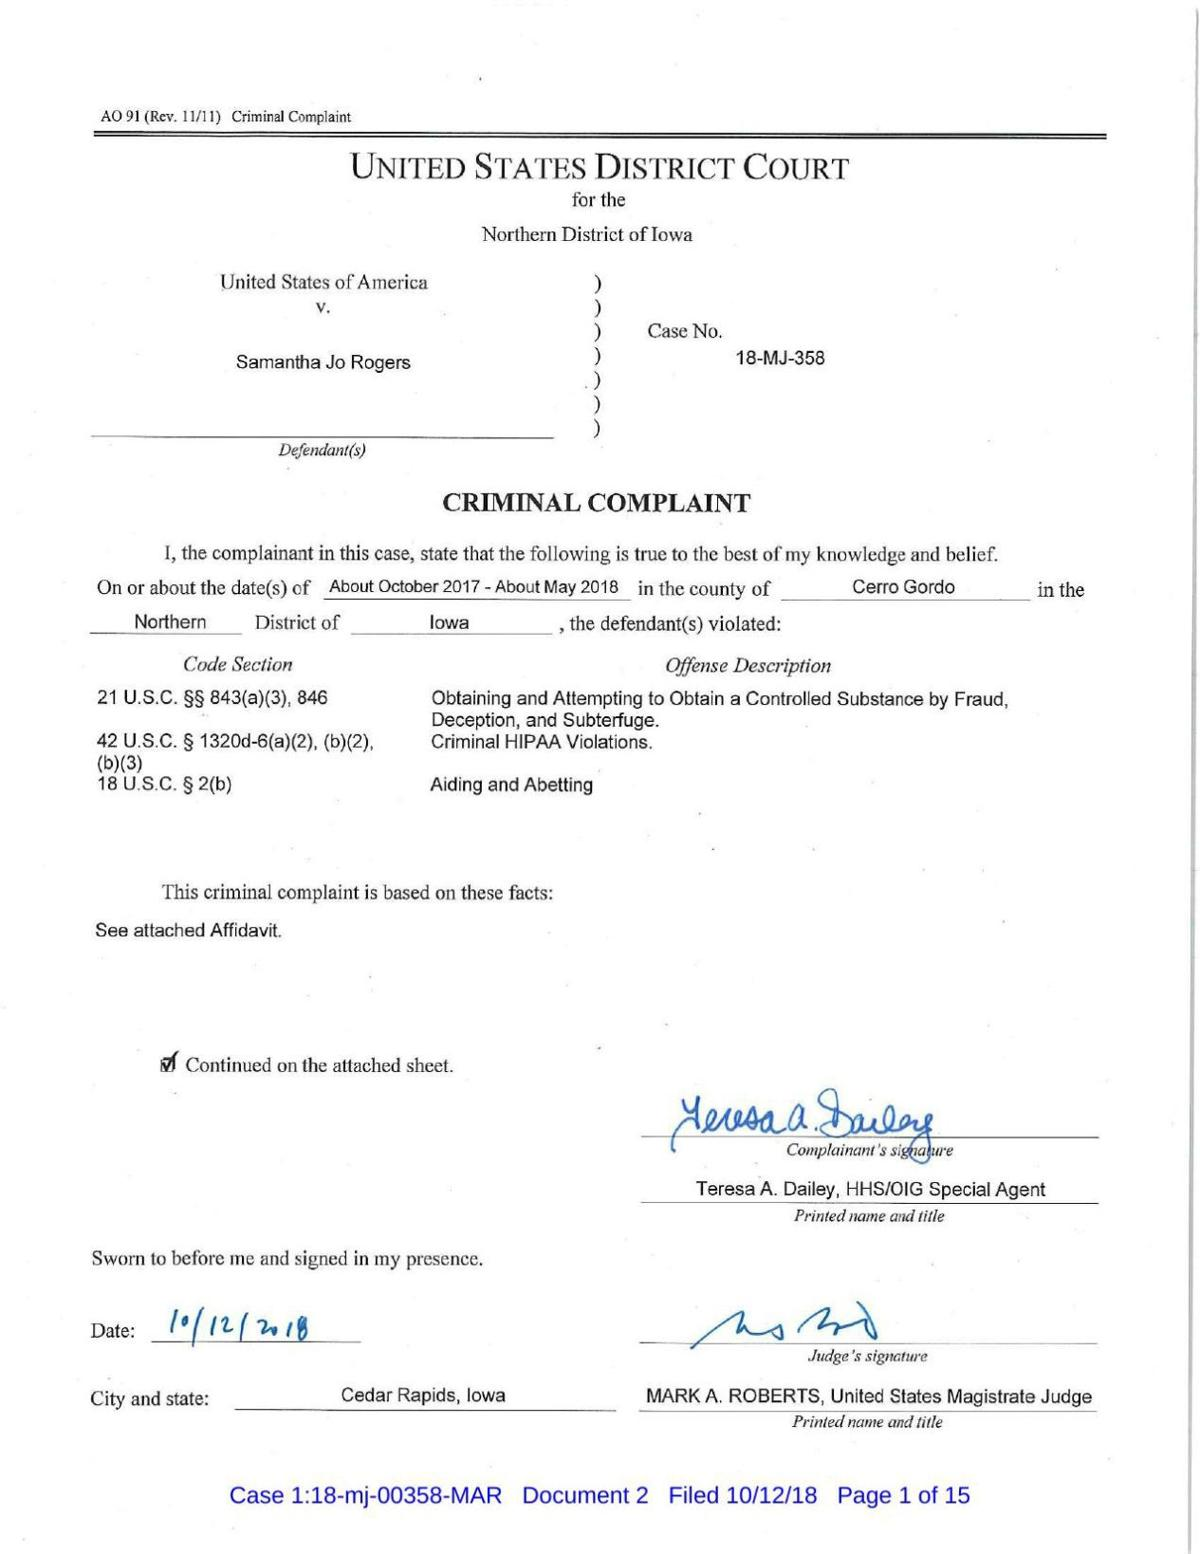 Federal charges against Samantha Jo Rogers